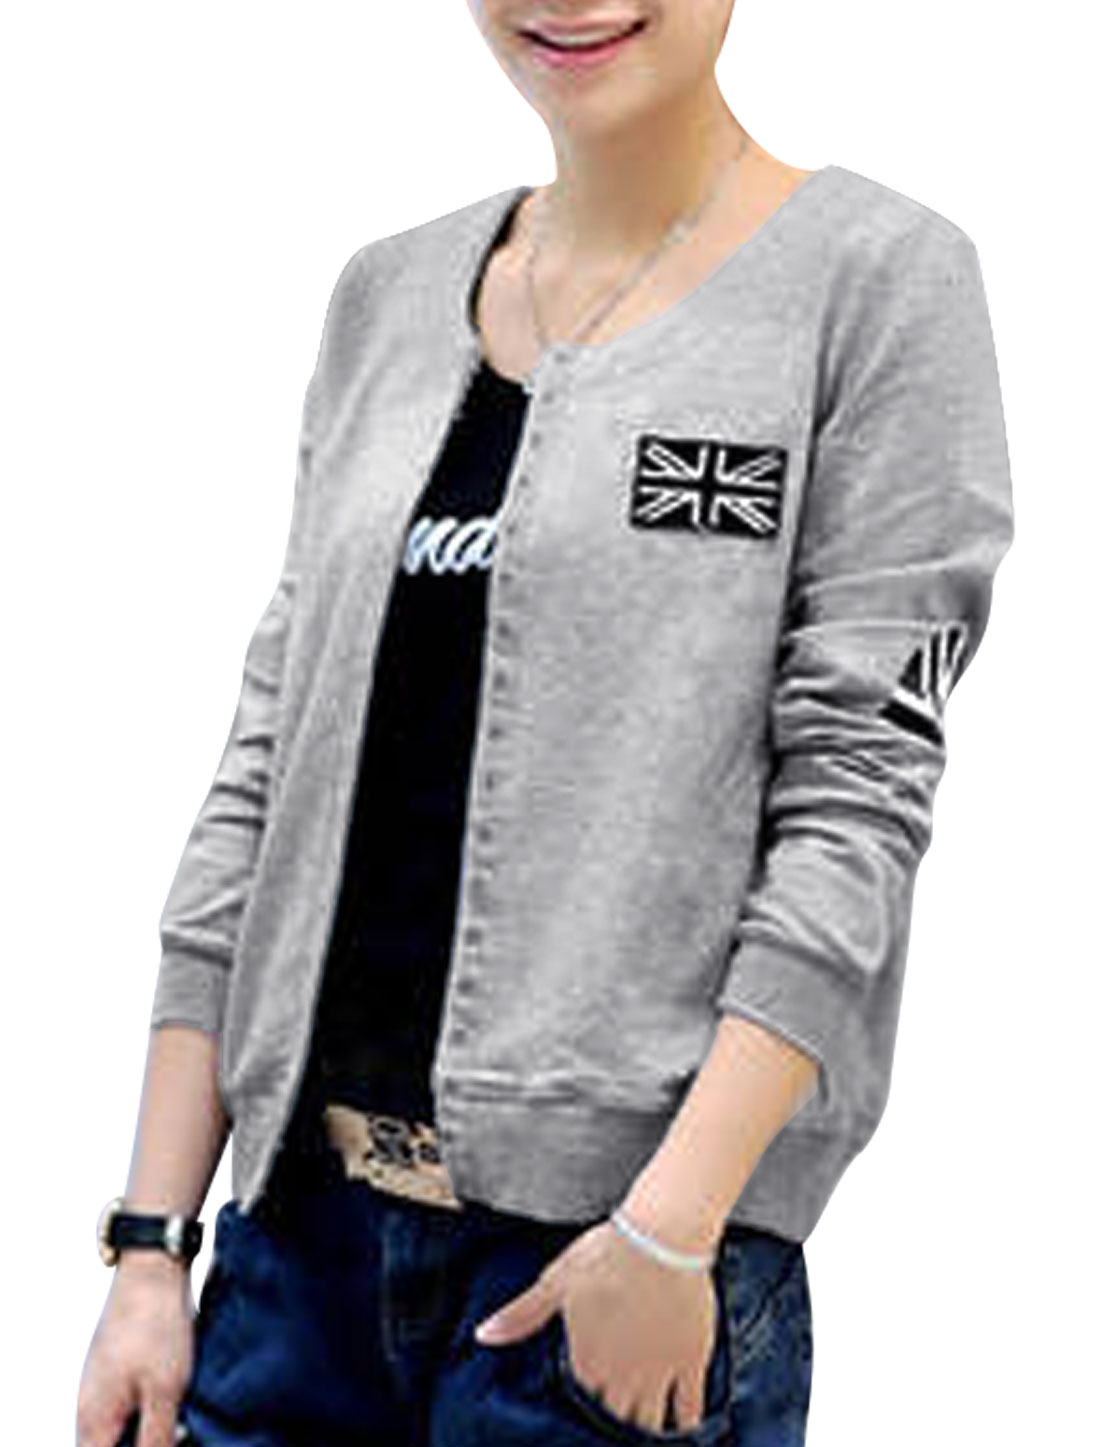 Women Fashion Style Union Flag Detail Leisure Jacket Light Gray XS